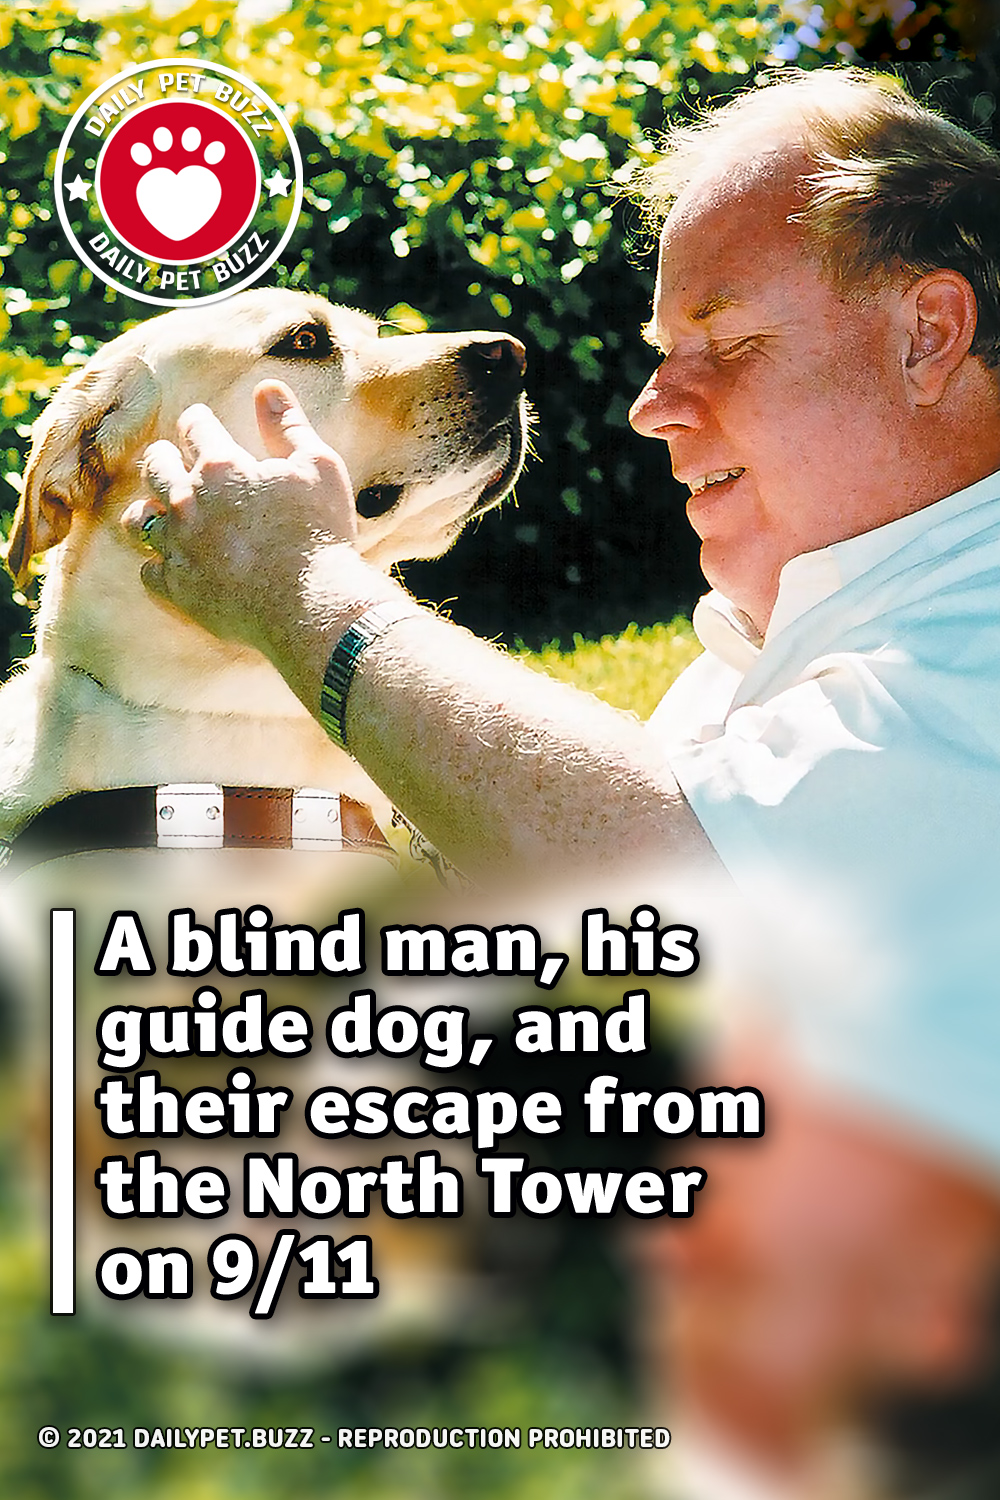 A blind man, his guide dog, and their escape from the North Tower on 9/11